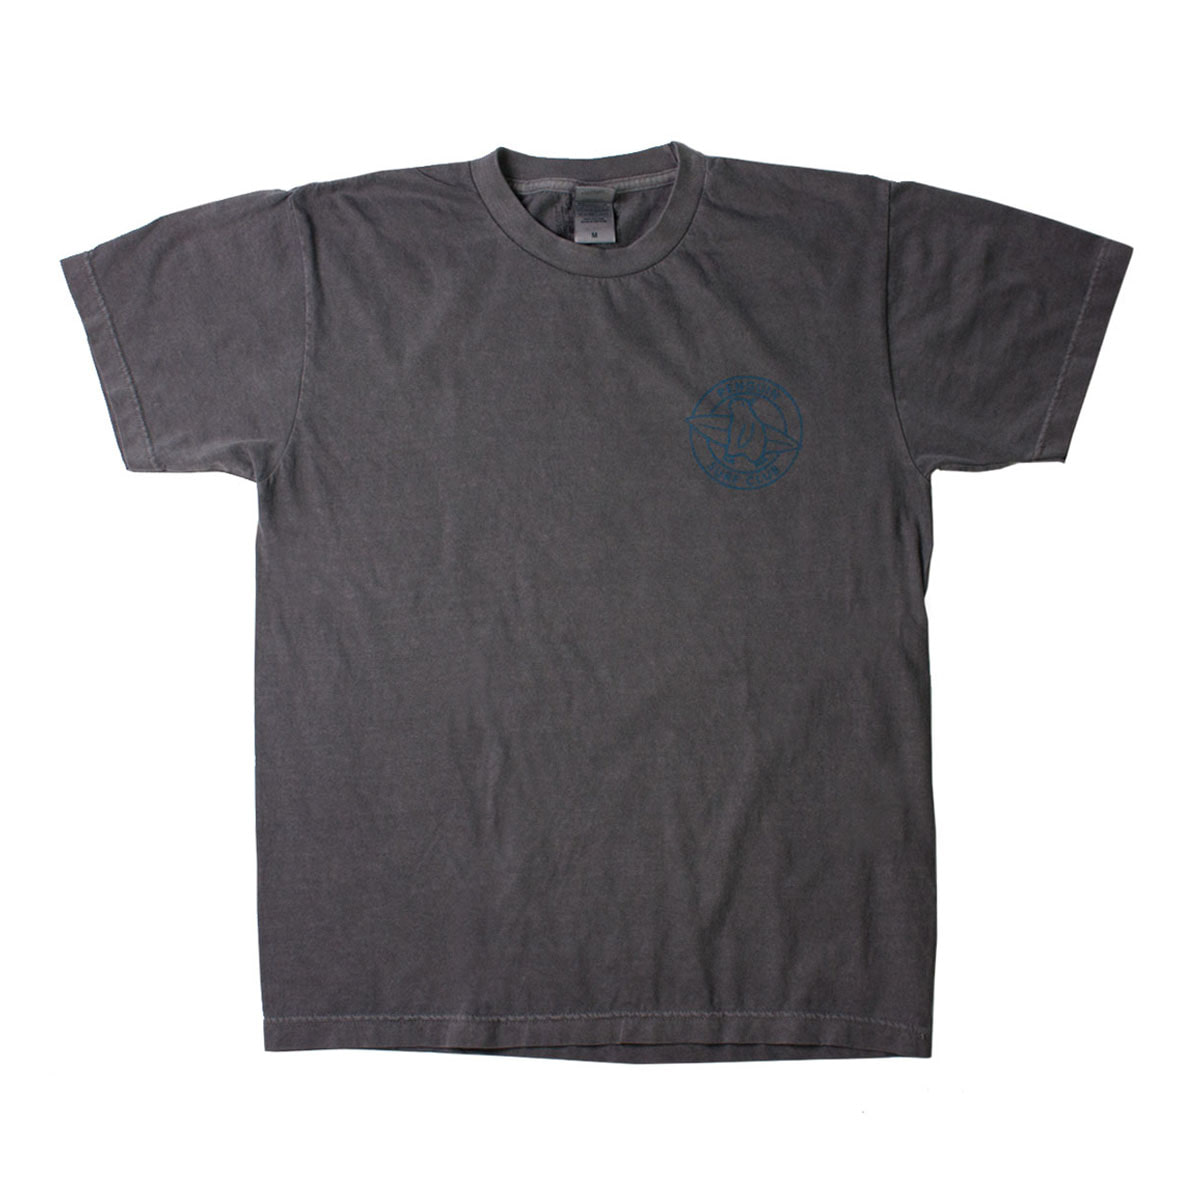 [BIGWAVE] PENGUIN SURF CLUB TEE 'VINTAGE BLACK'